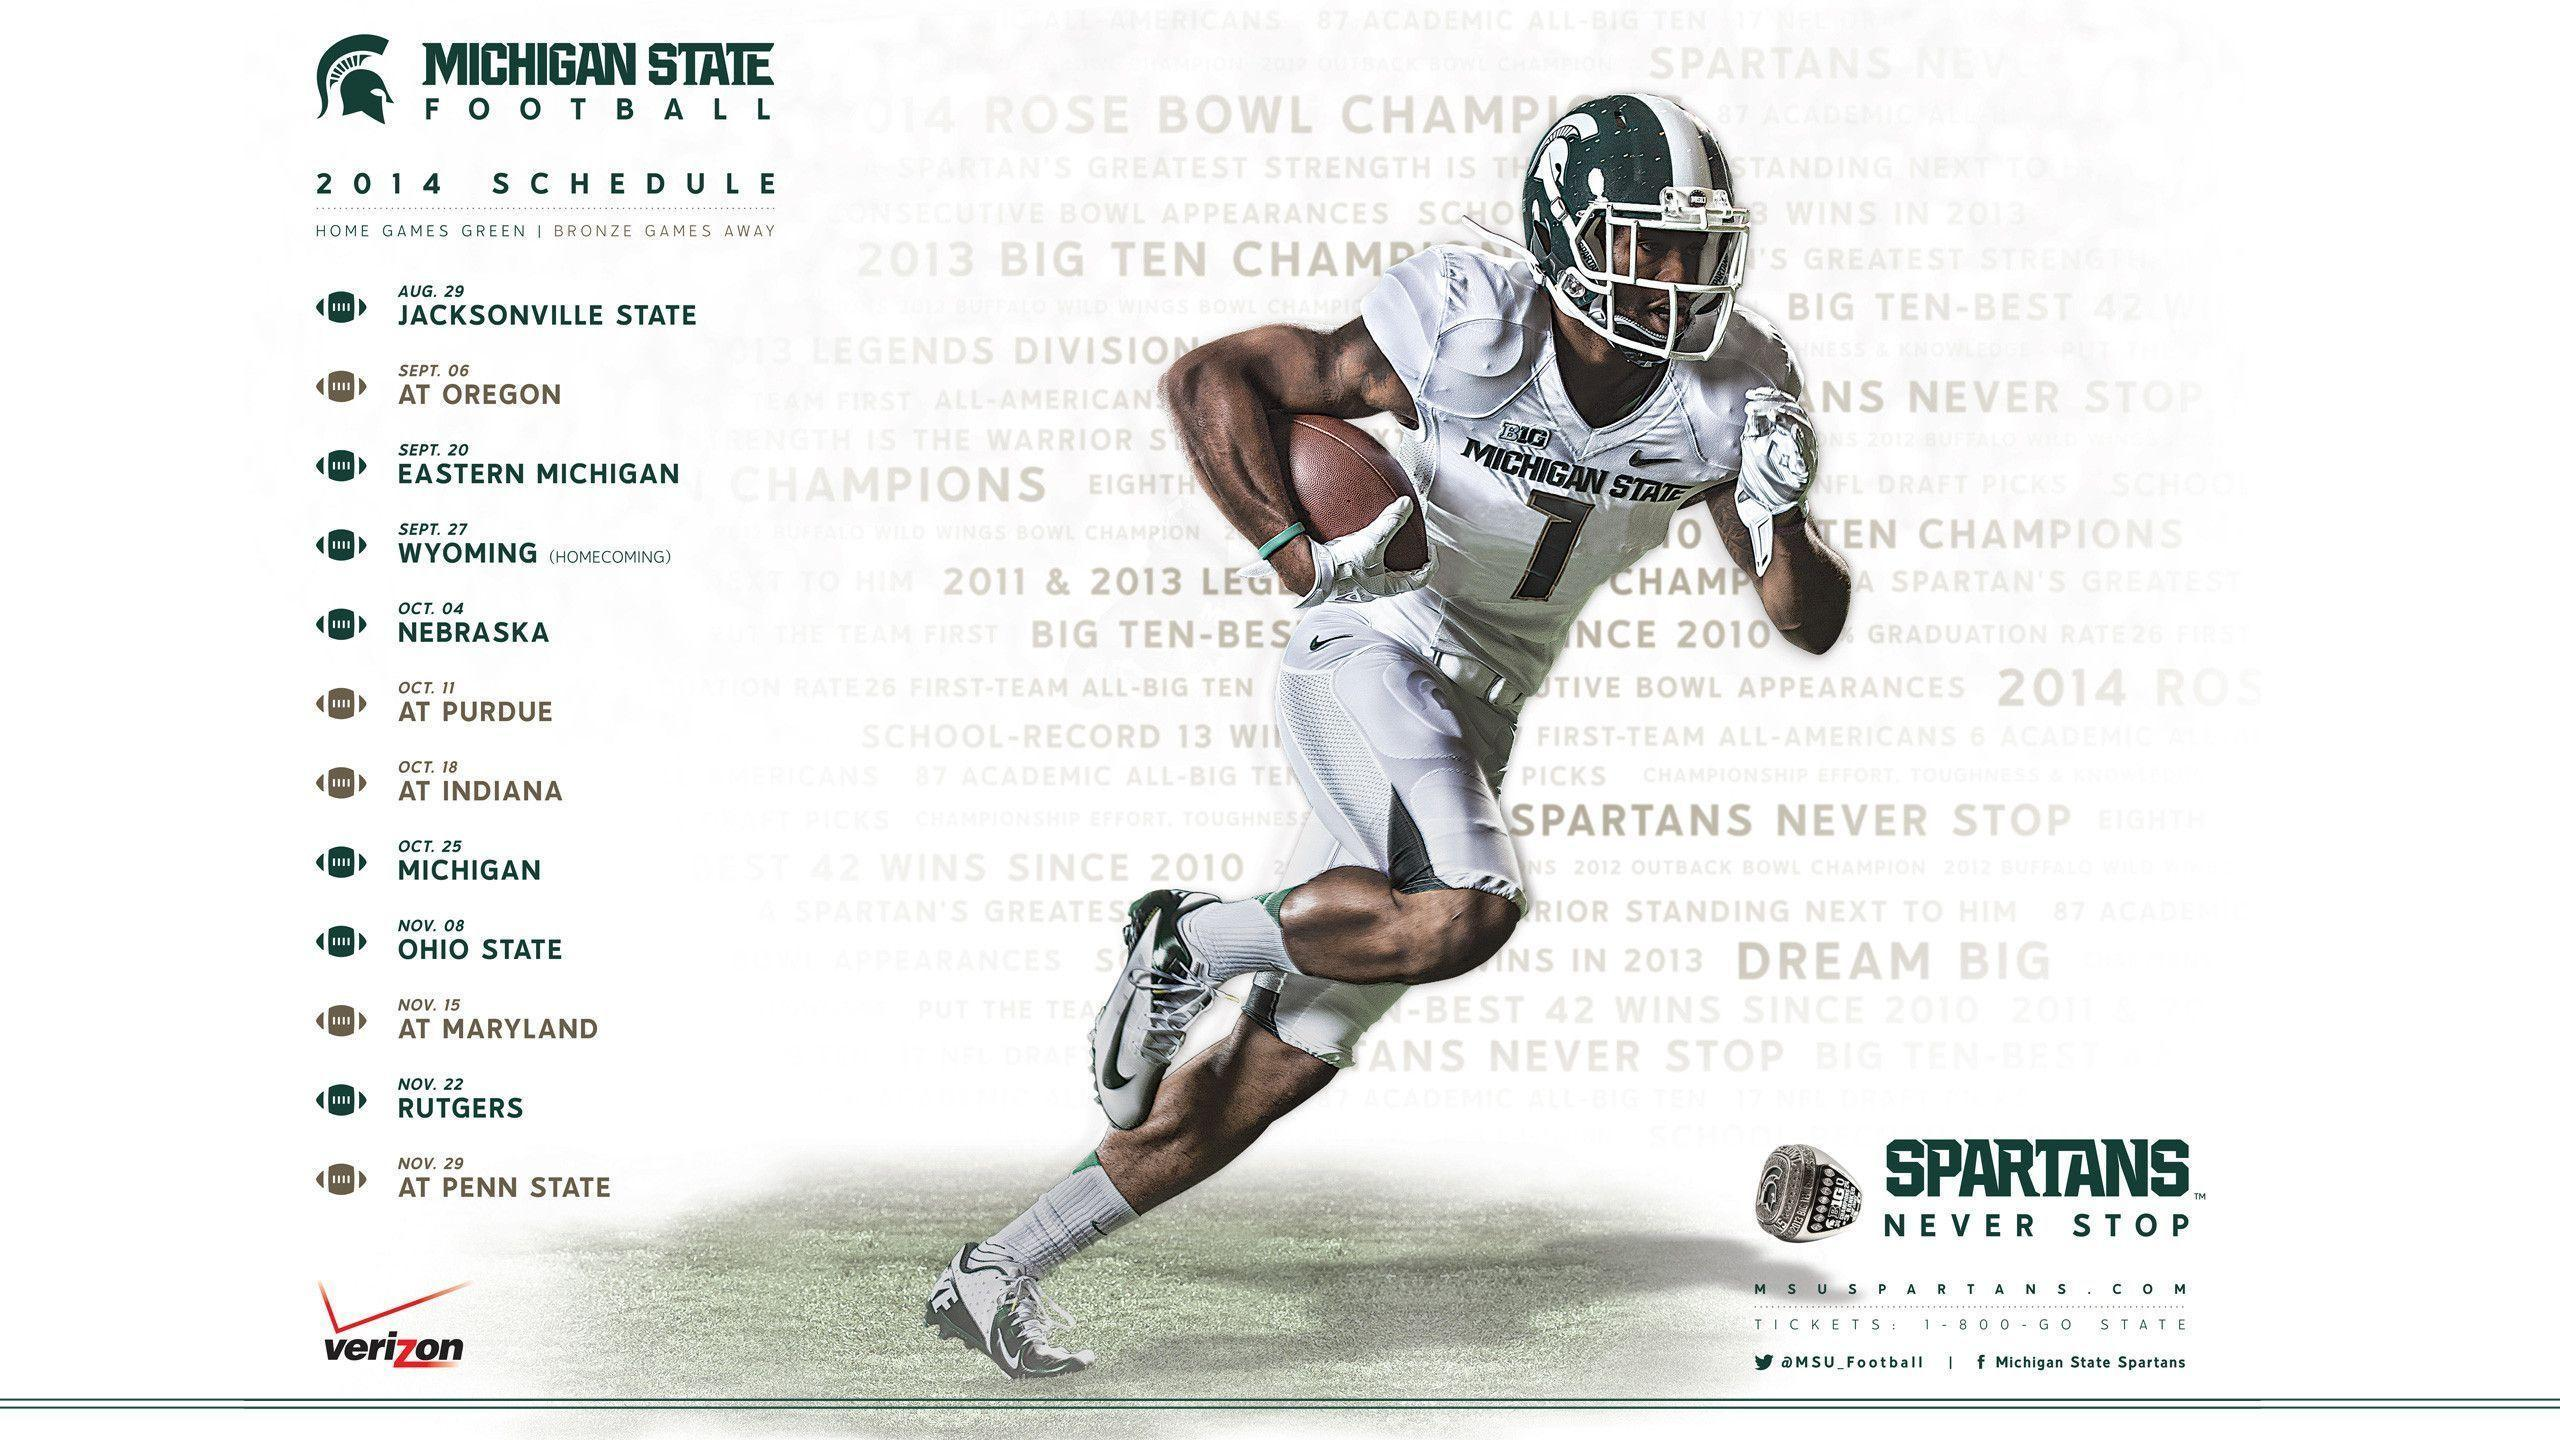 msu football schedule 2016 wallpapers - wallpaper cave